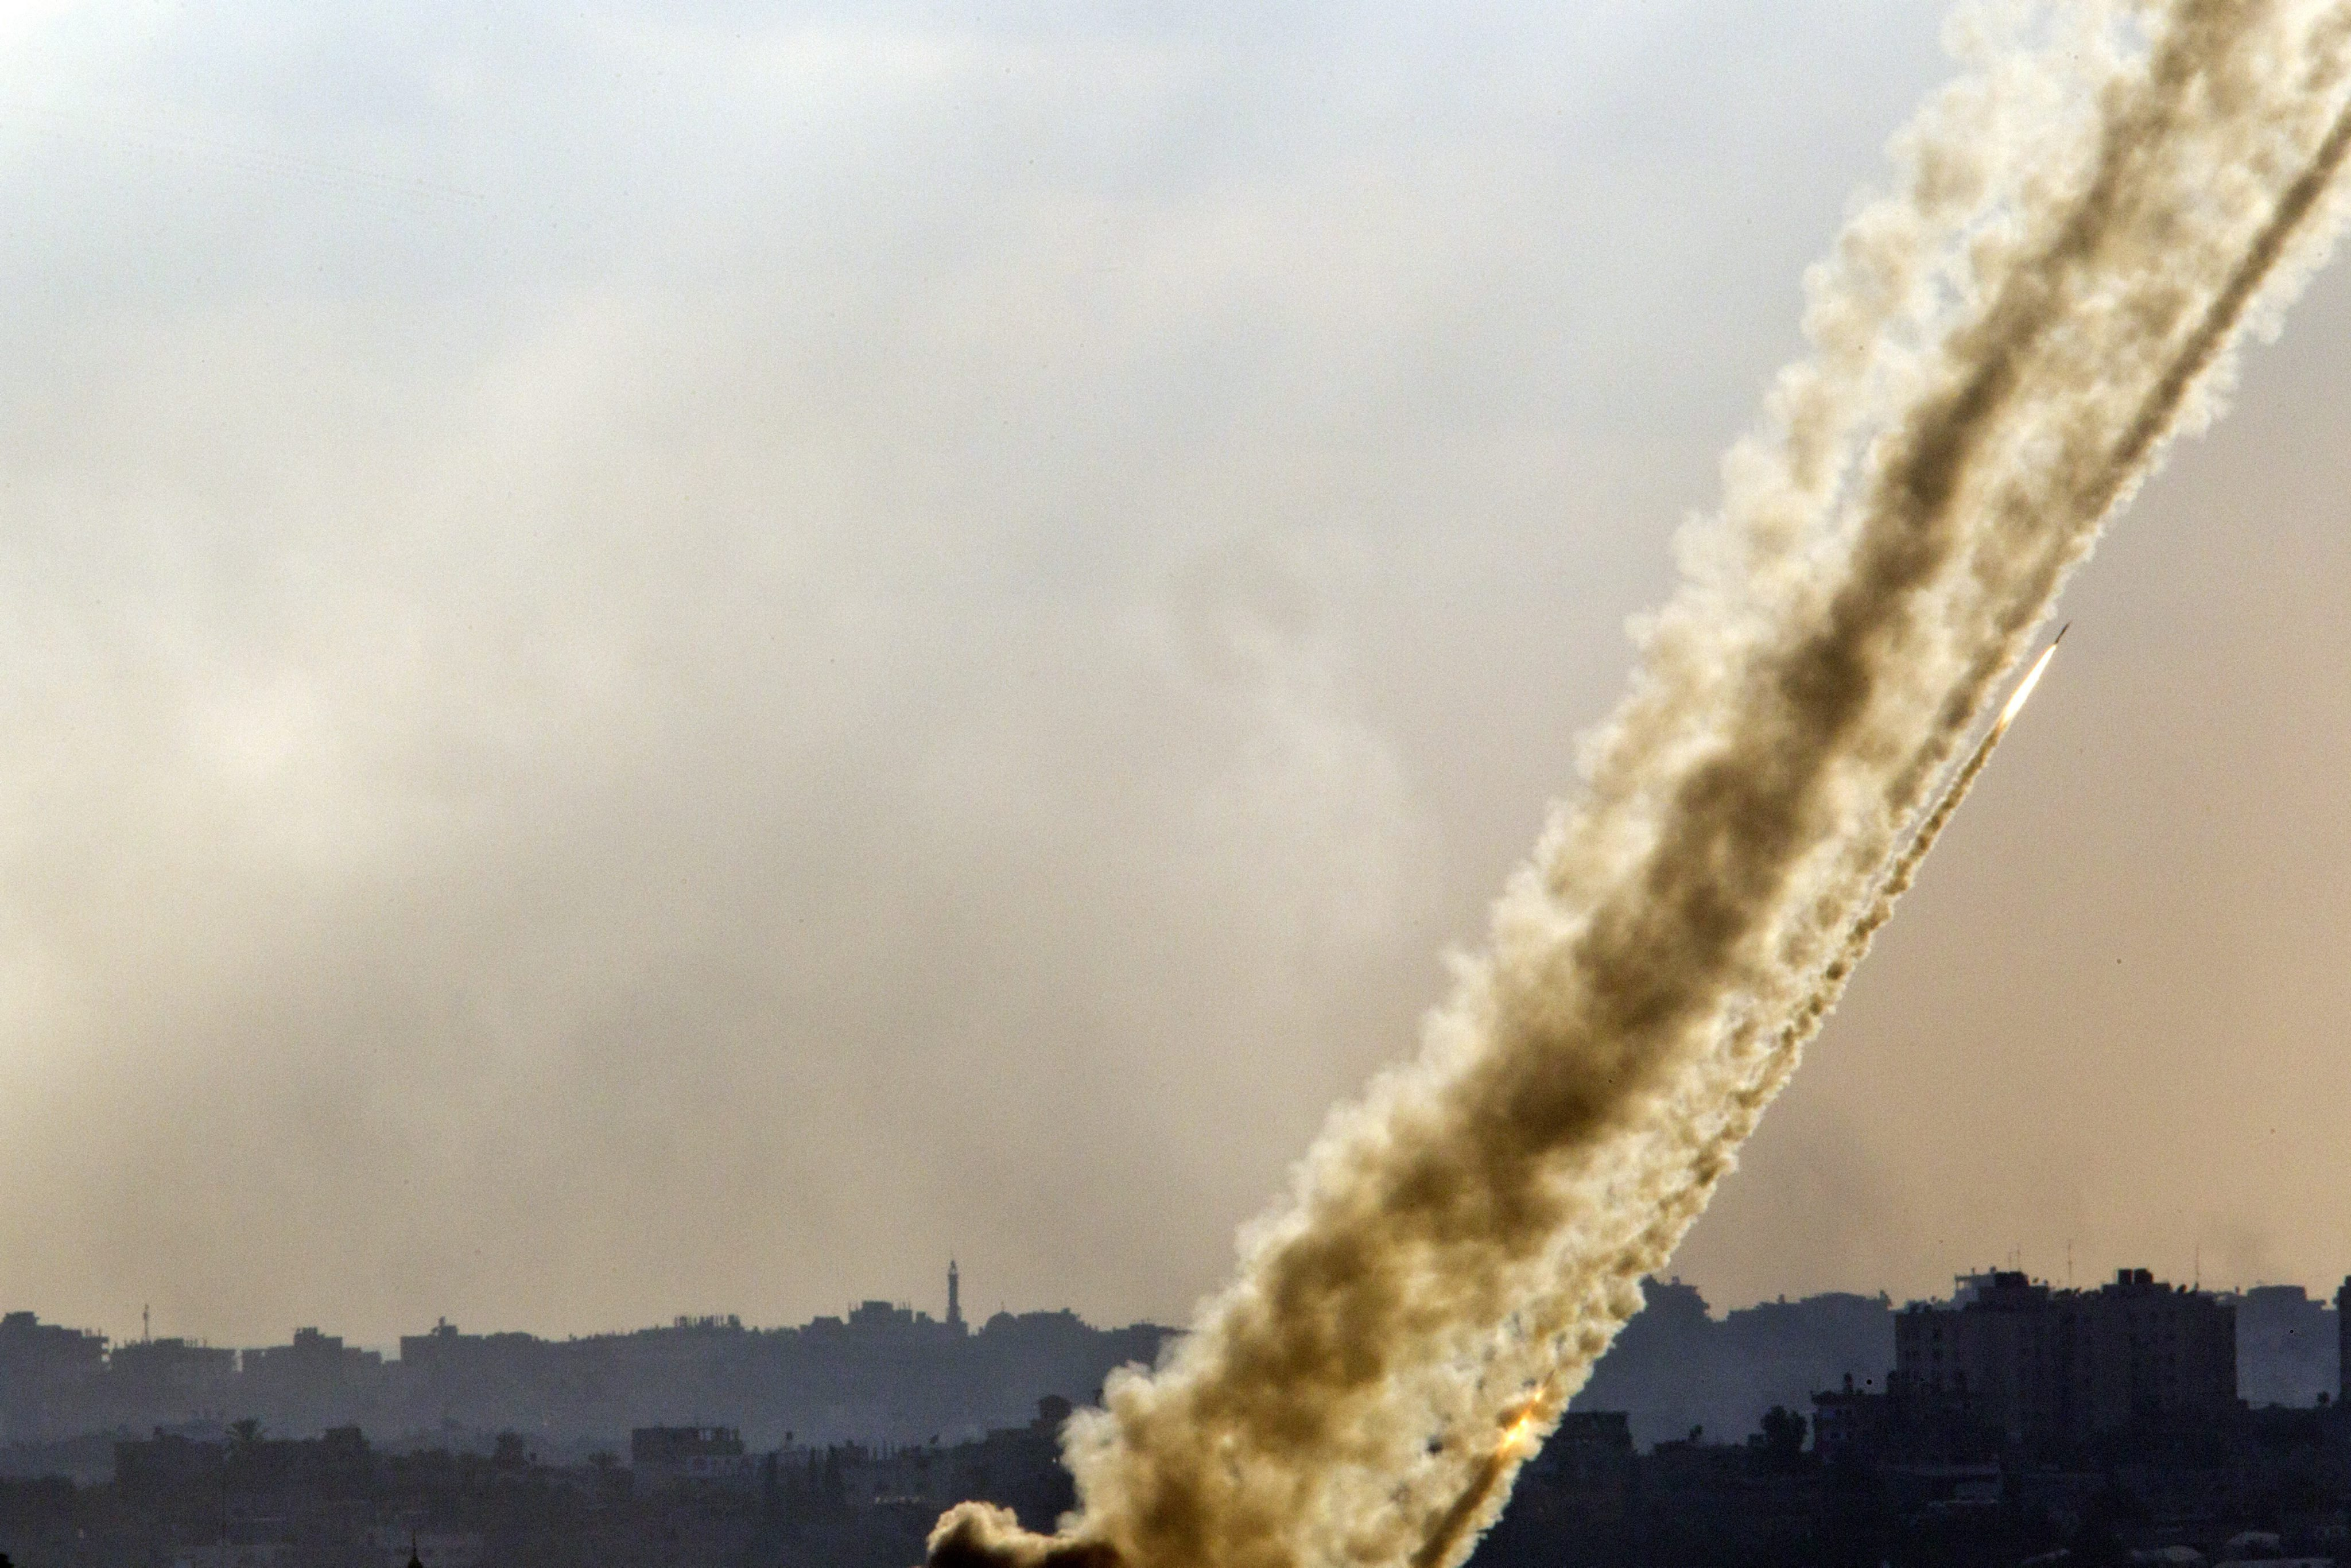 Multiple rocket launches from a site inside the Gaza Strip firing towards Israel are seen from a lookout point in southern Israel on July 17, 2014.